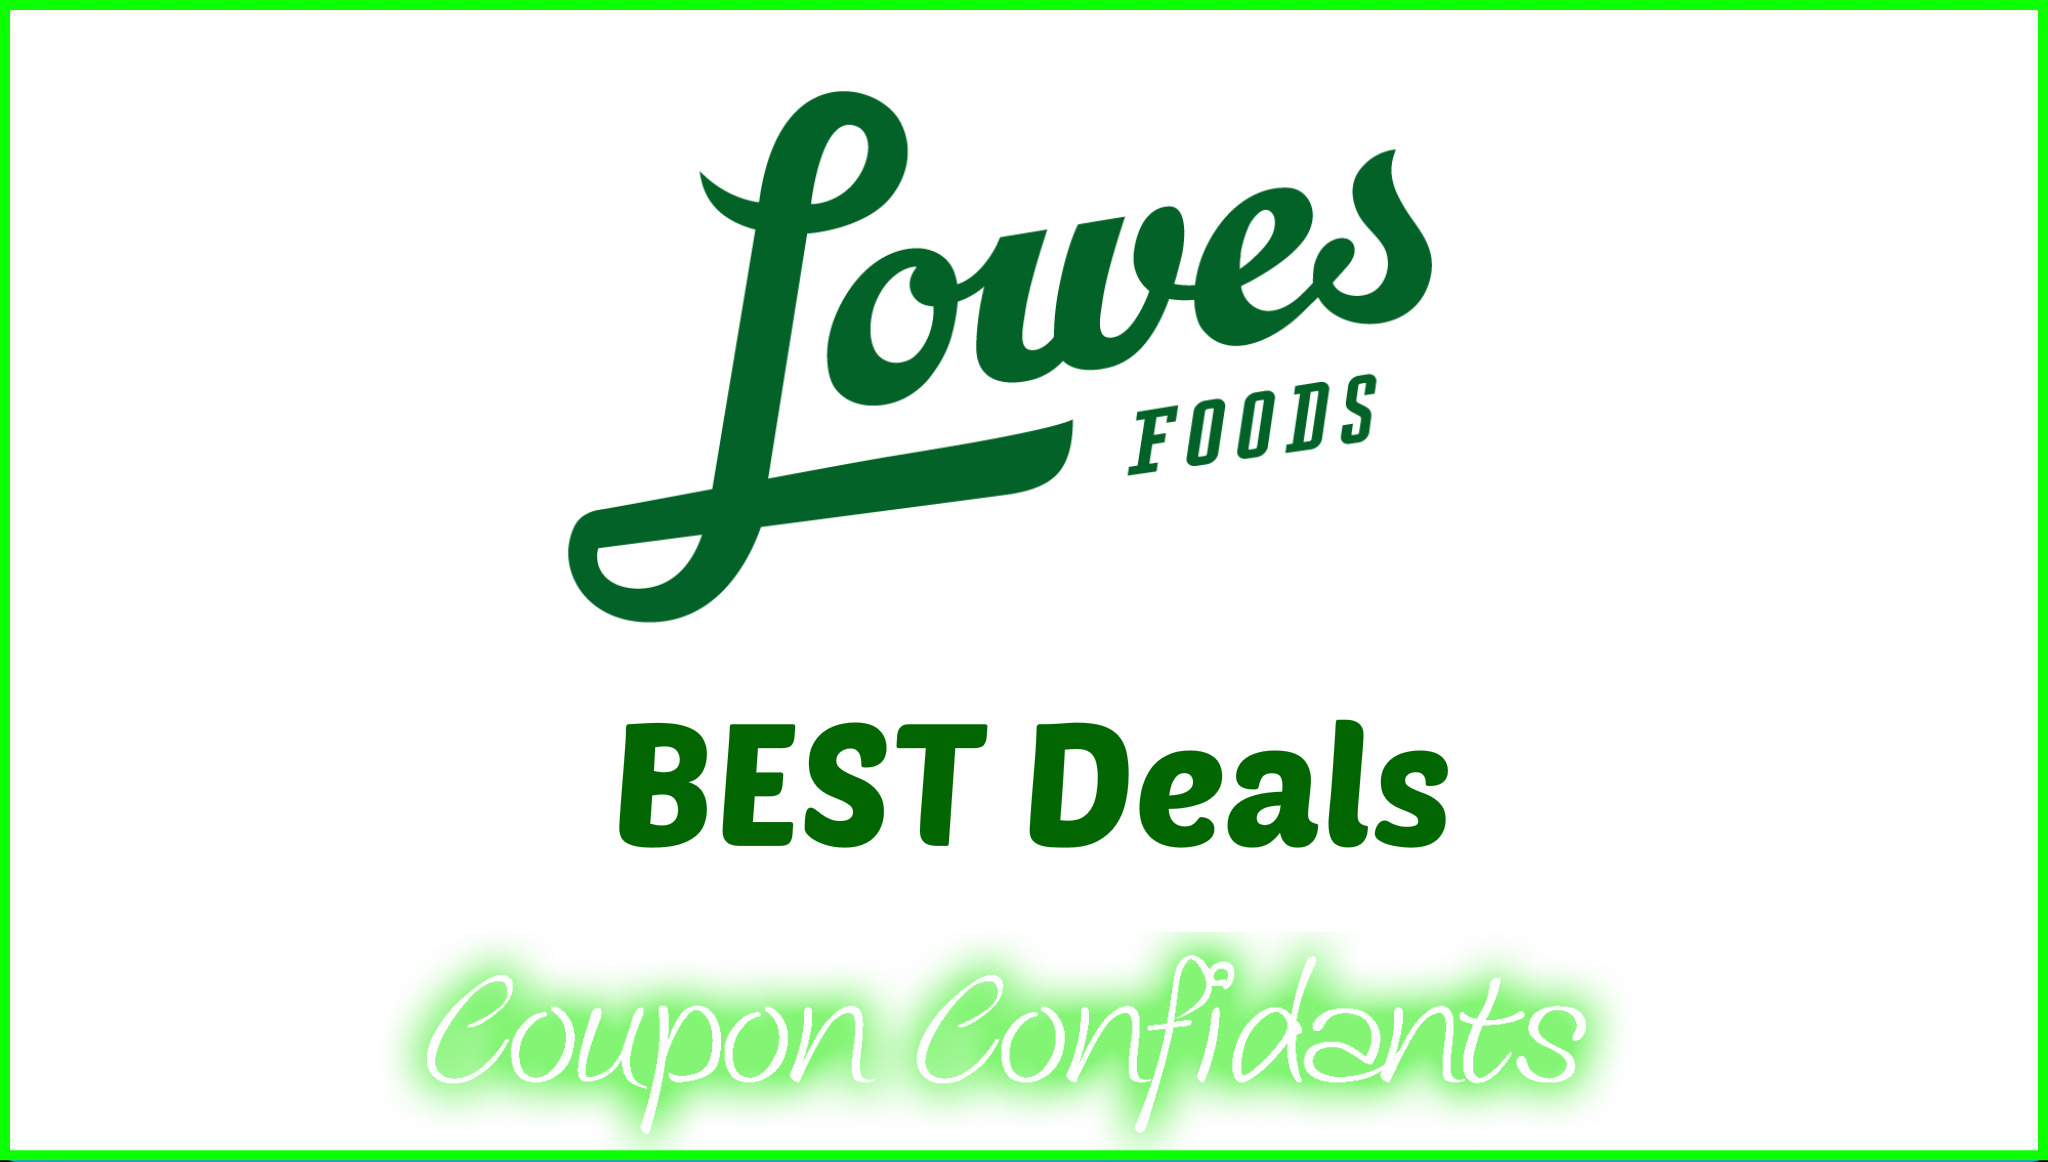 Lowes Foods - May 17 - May 23